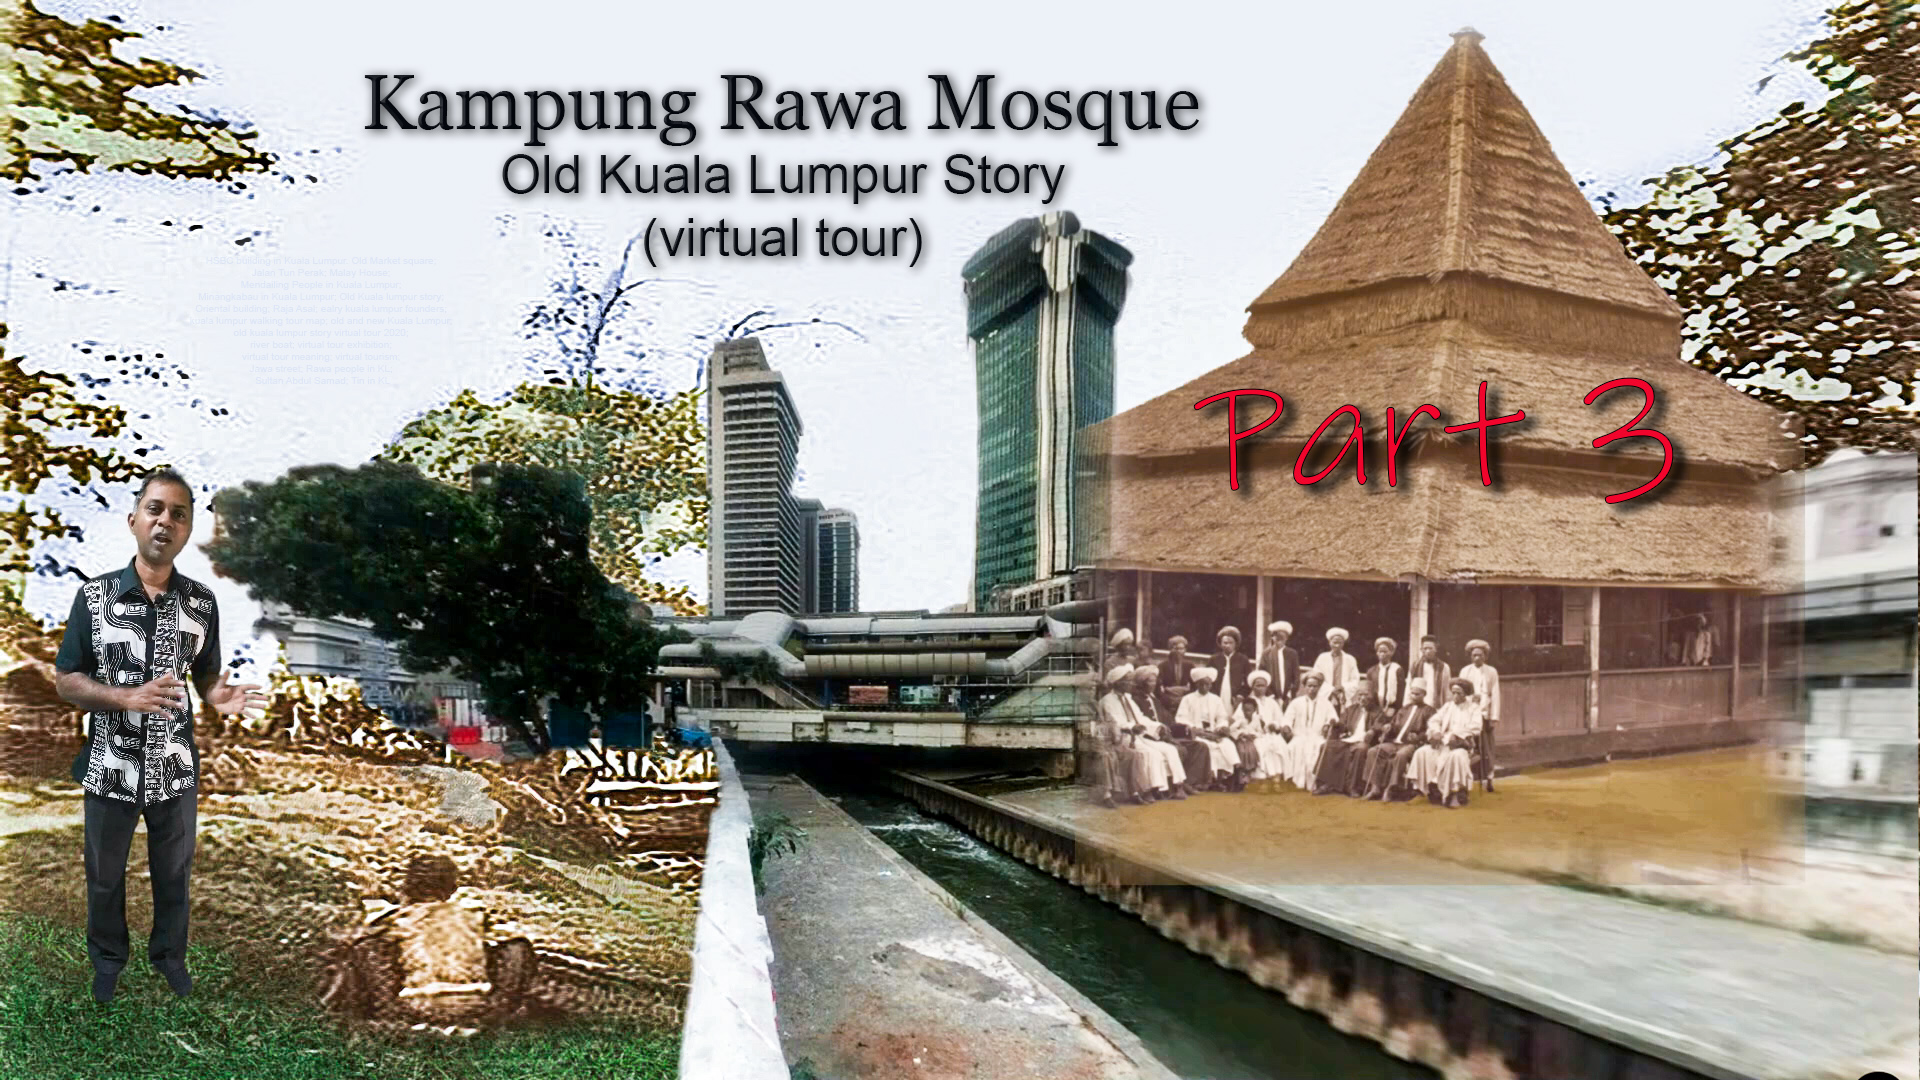 The beginning of Kuala Lumpur in 1857, Klang river flowing on your right side, in the video. I'm bringing you virtually to the old Kuala Lumpur to life, by telling what happened then and now as the visual changes according to current development.